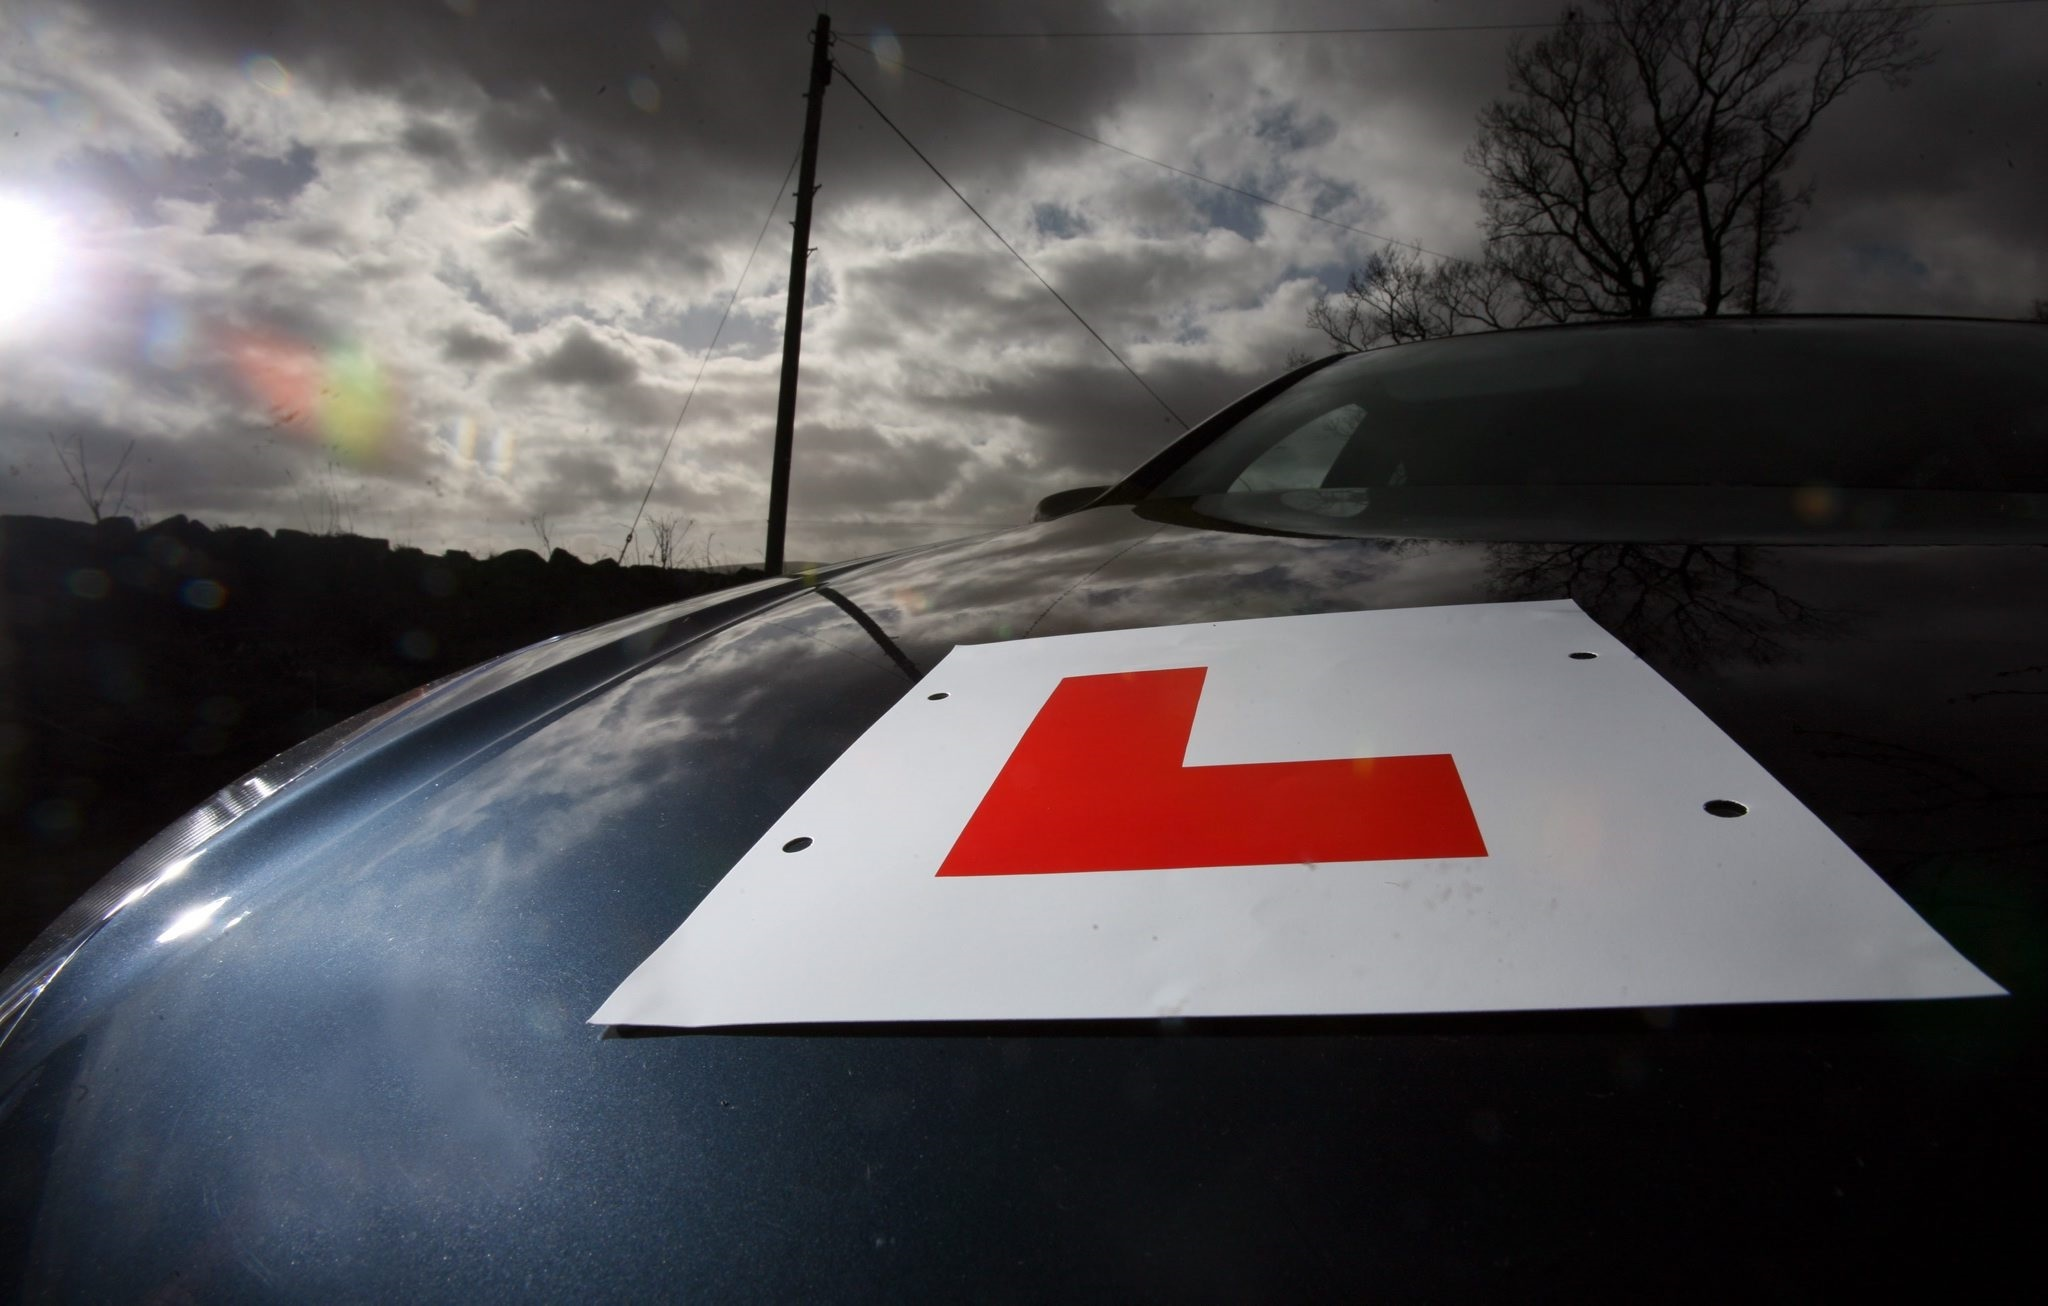 Driving tests are in the news